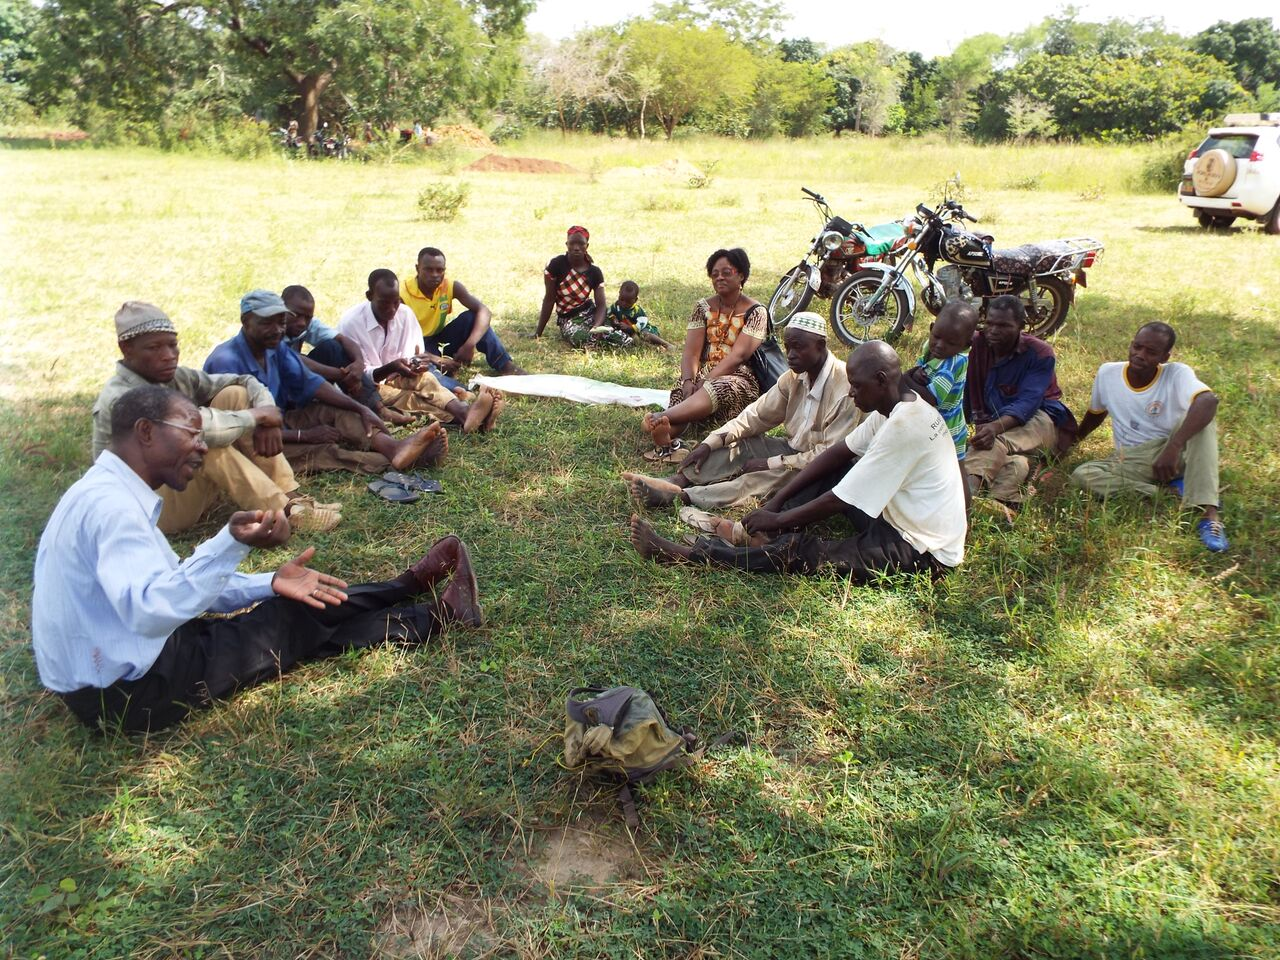 Villagers in Burkina Faso hold a community meeting to organize the construction of a new well.